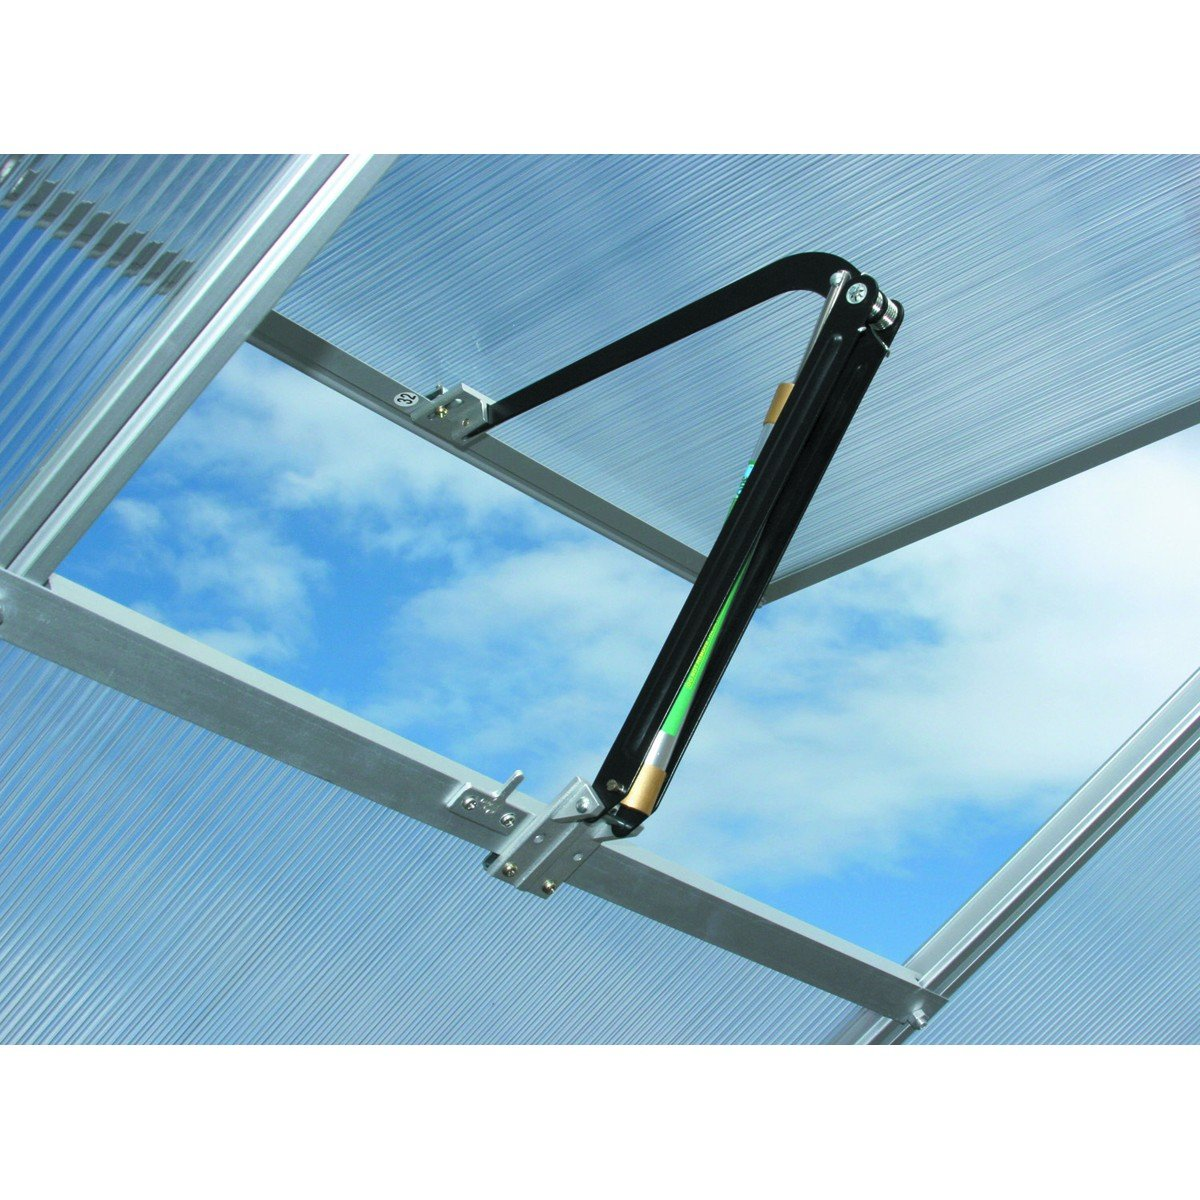 GREENHOUSE WINDOW VENT OPENER